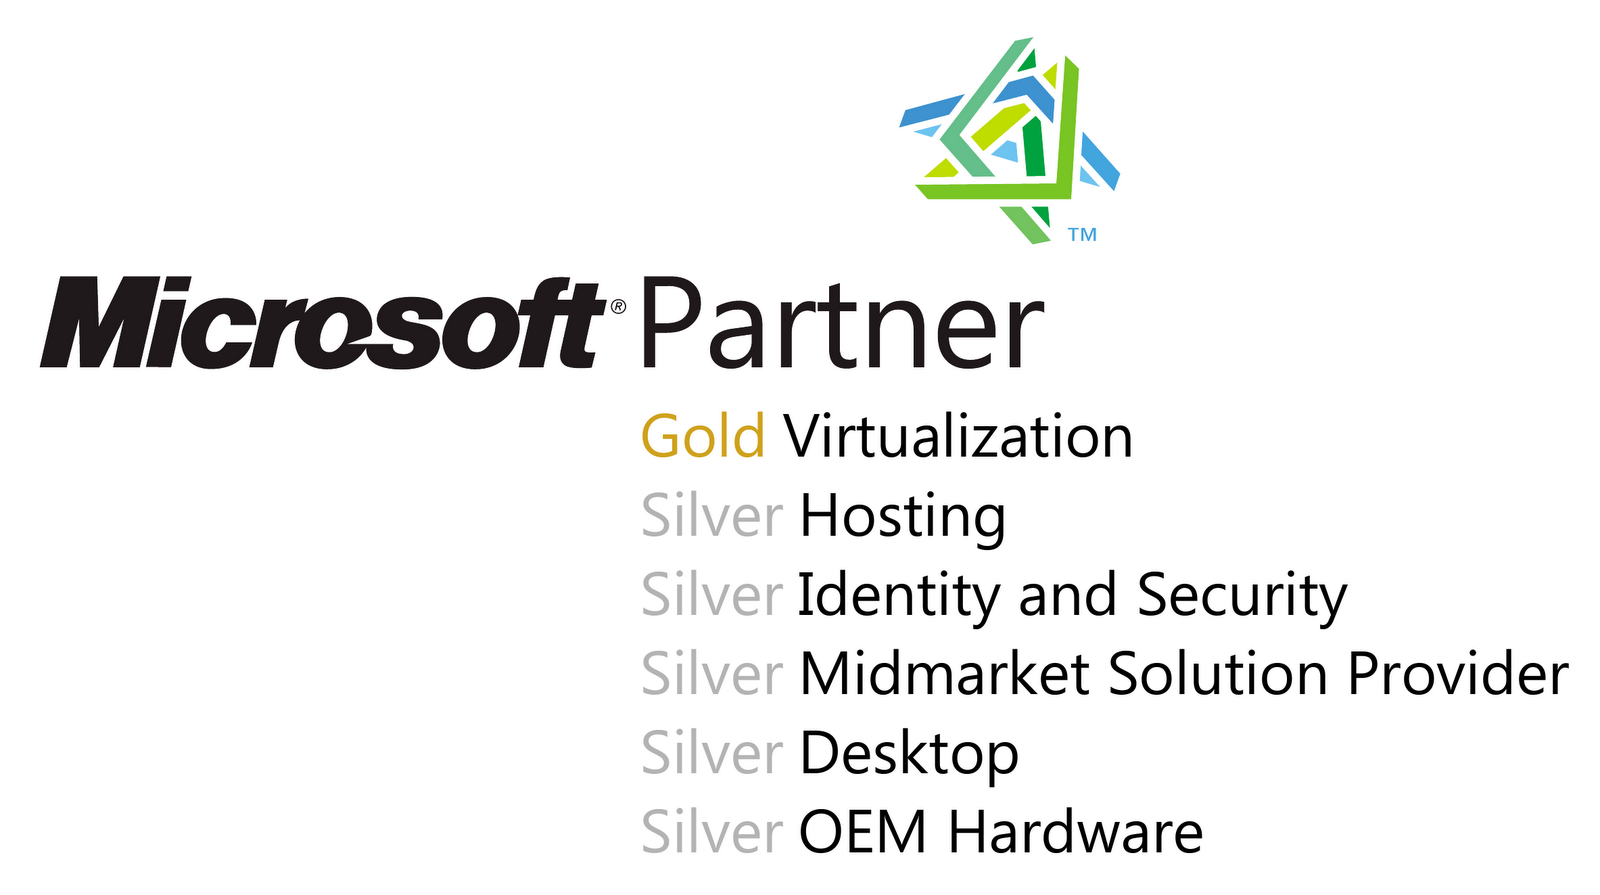 Medhurst Achieves Gold Certification In Virtualisation From